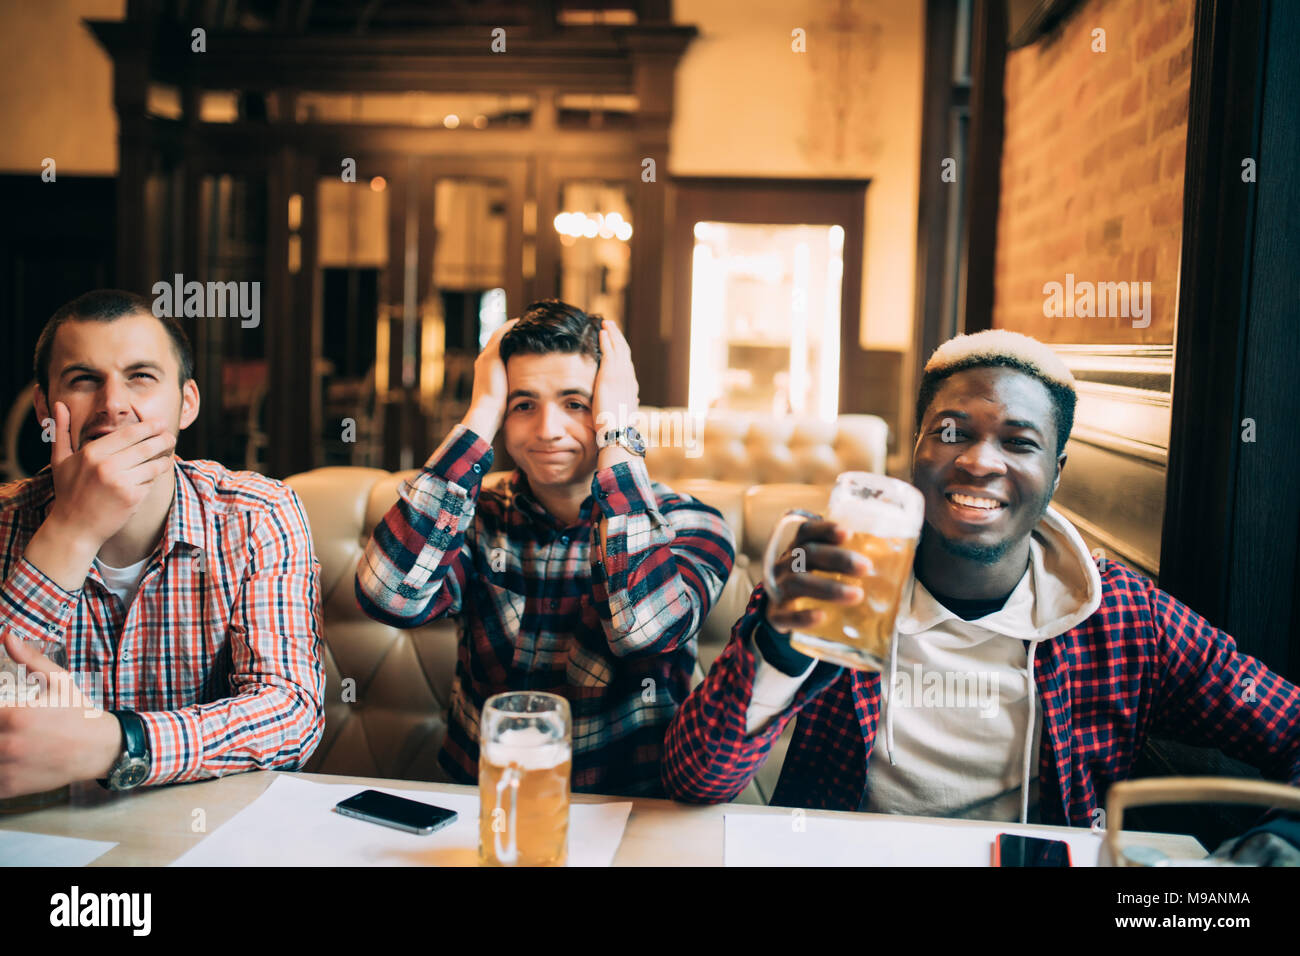 Watching TV in bar. Two happy young men drinking beer and gesturing while sitting in bar - Stock Image